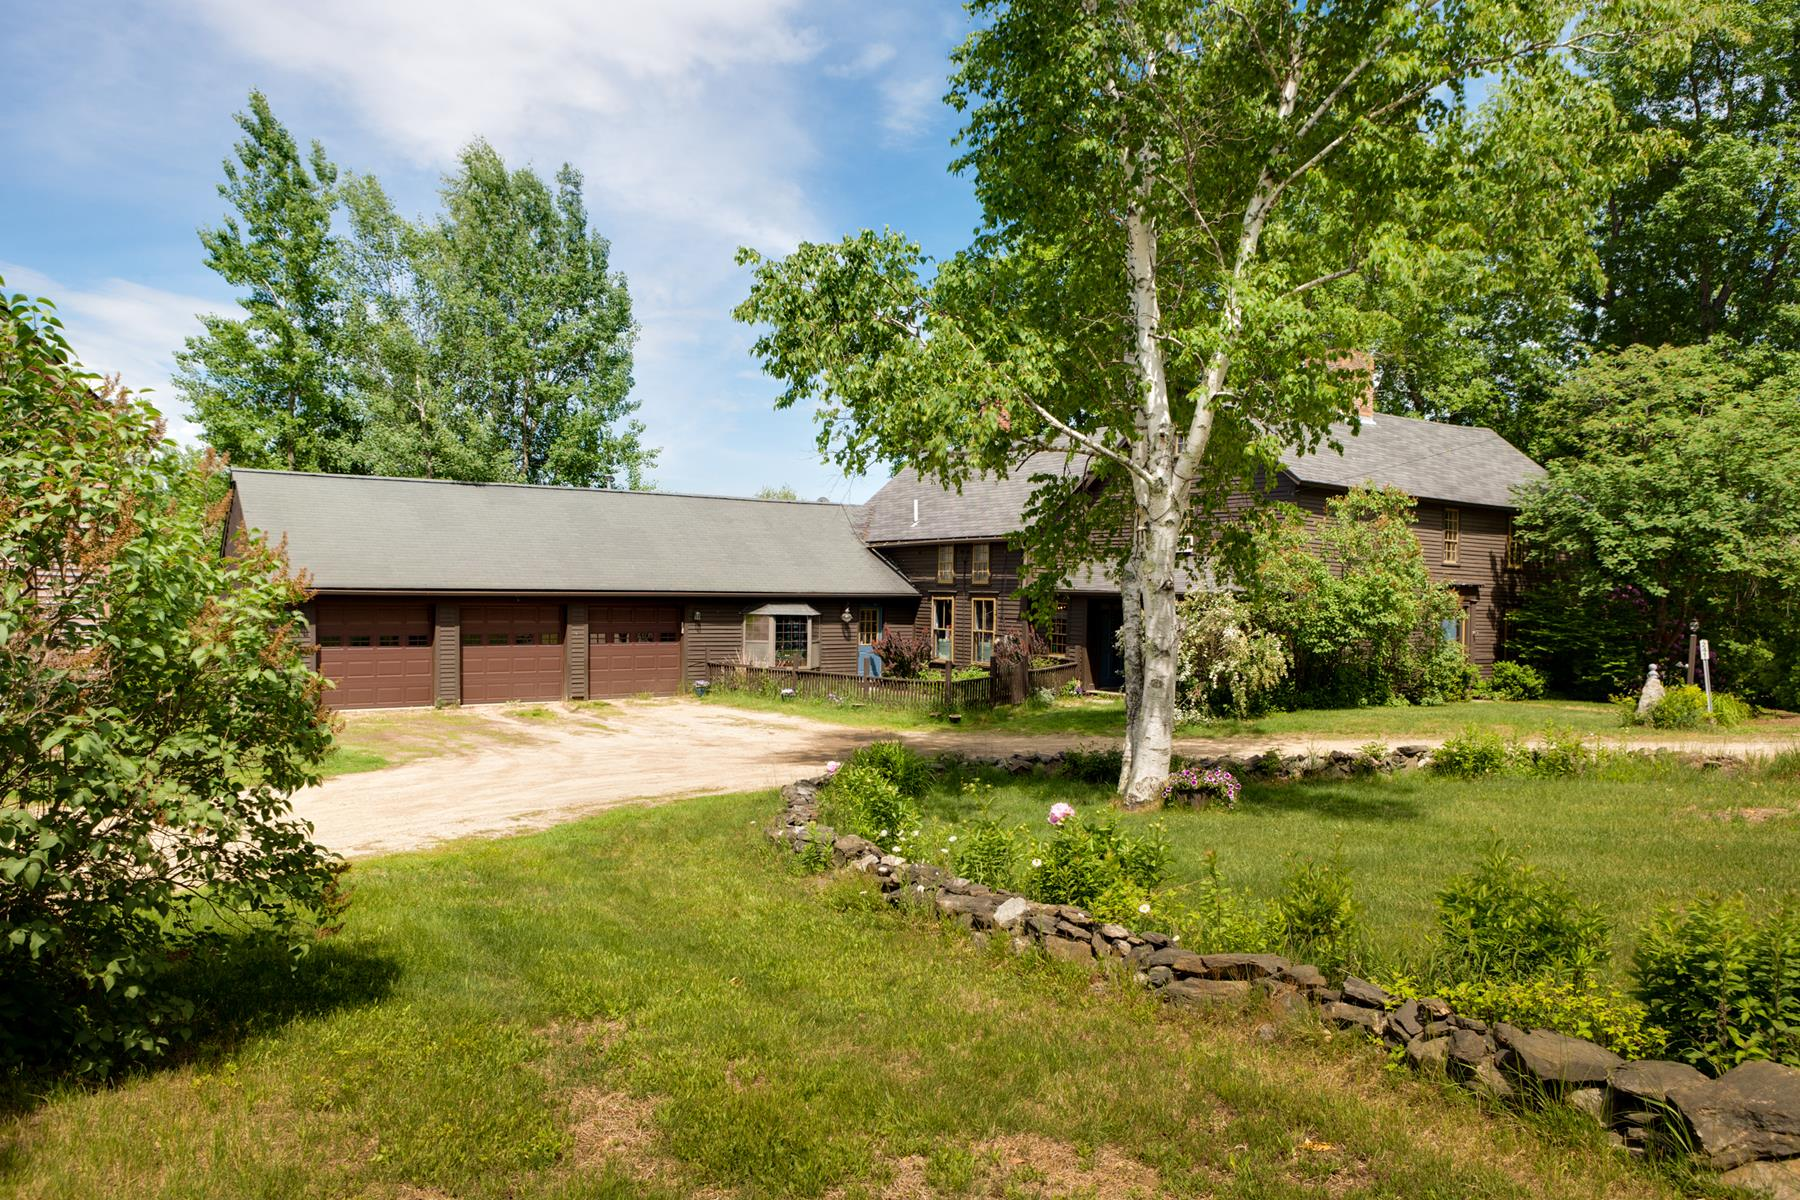 Single Family Home for Sale at 241 Sandown Rd, Chester Chester, New Hampshire, 03036 United States